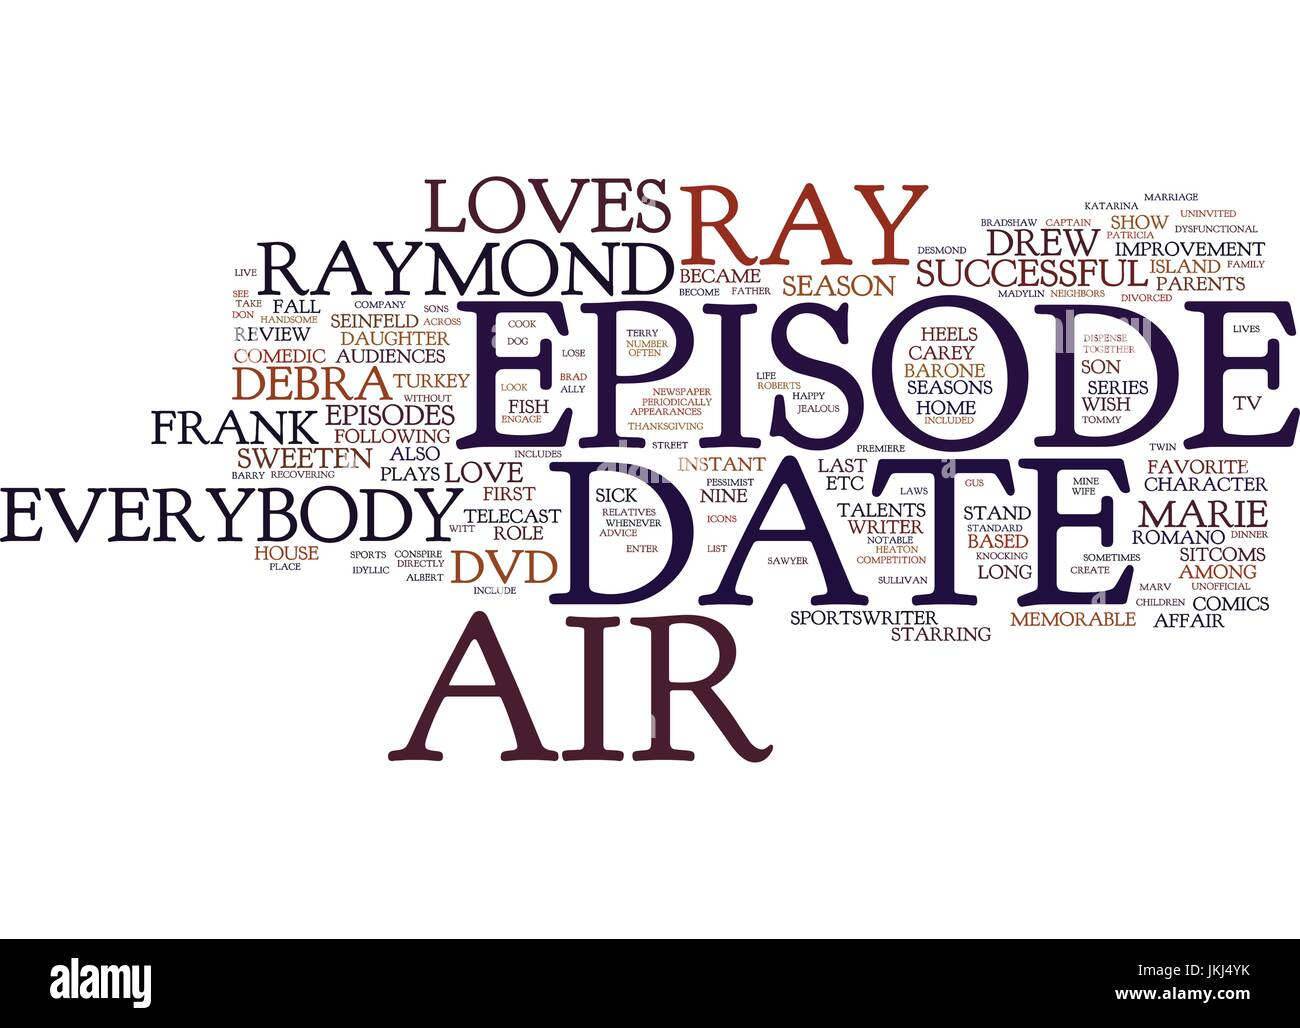 EVERYBODY LOVES RAYMOND DVD REVIEW Text Background Word Cloud Concept - Stock Vector